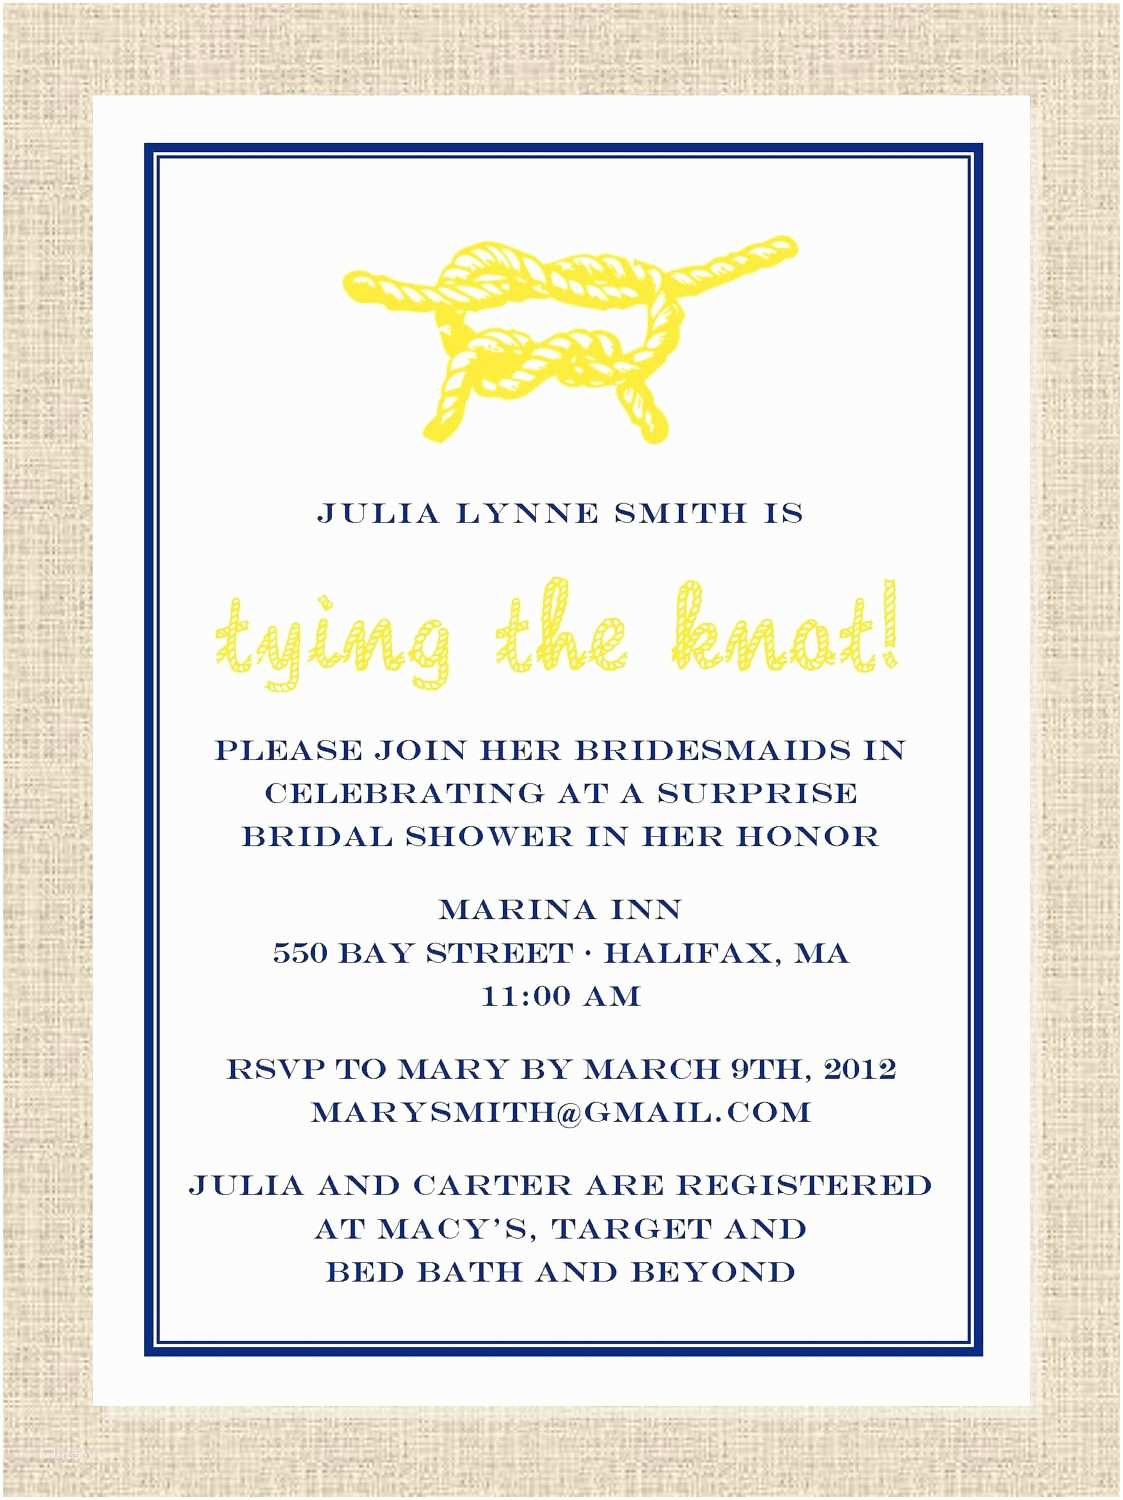 Nautical Bridal Shower Invitations Nautical Bridal Shower On Pinterest